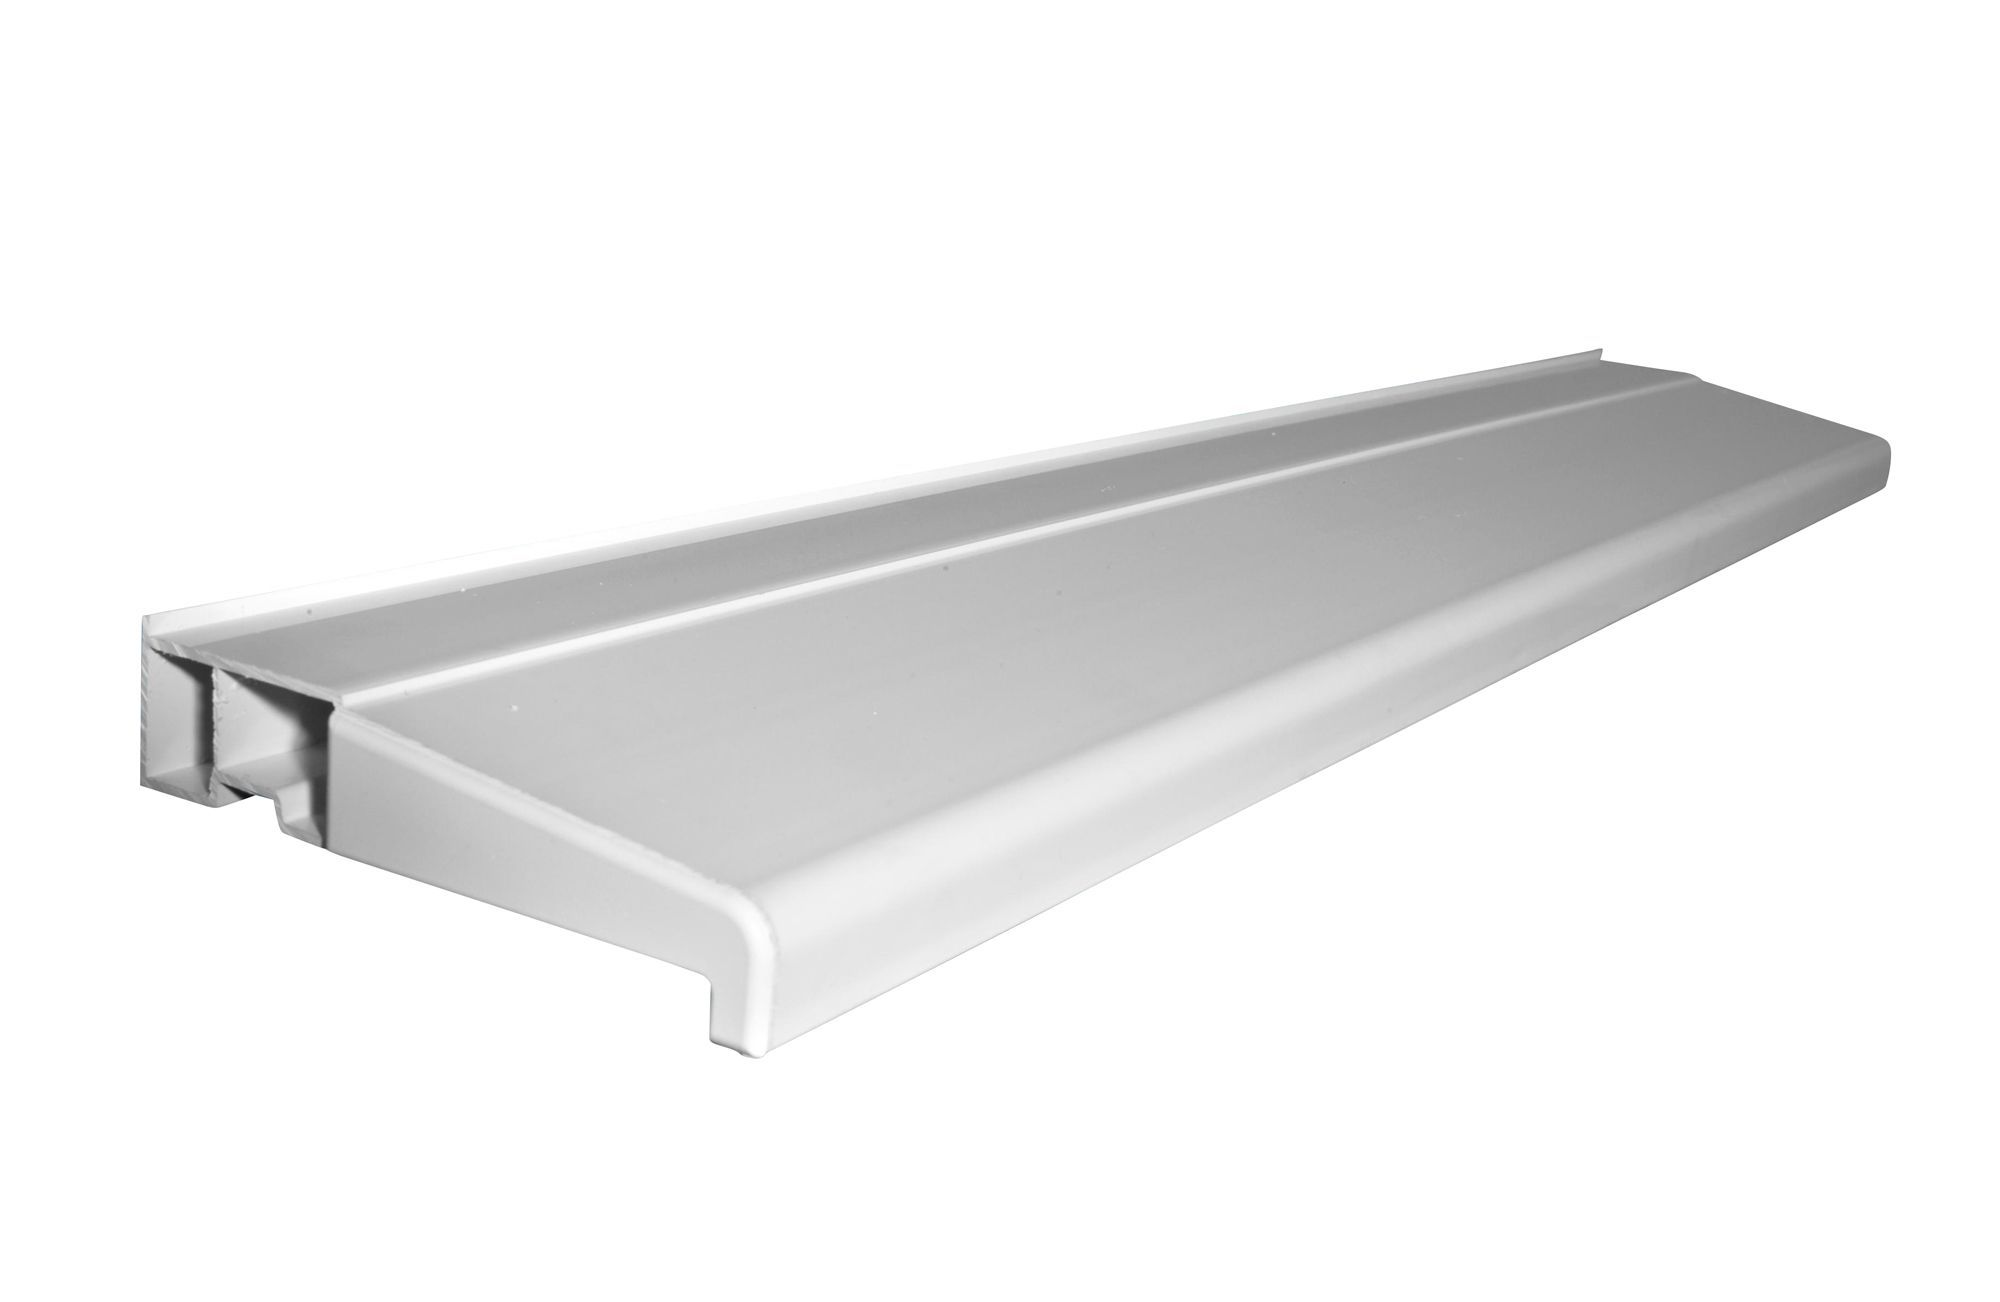 White pvcu door cill h 30mm l 1500mm d 25mm for Upvc front door 78 x 30